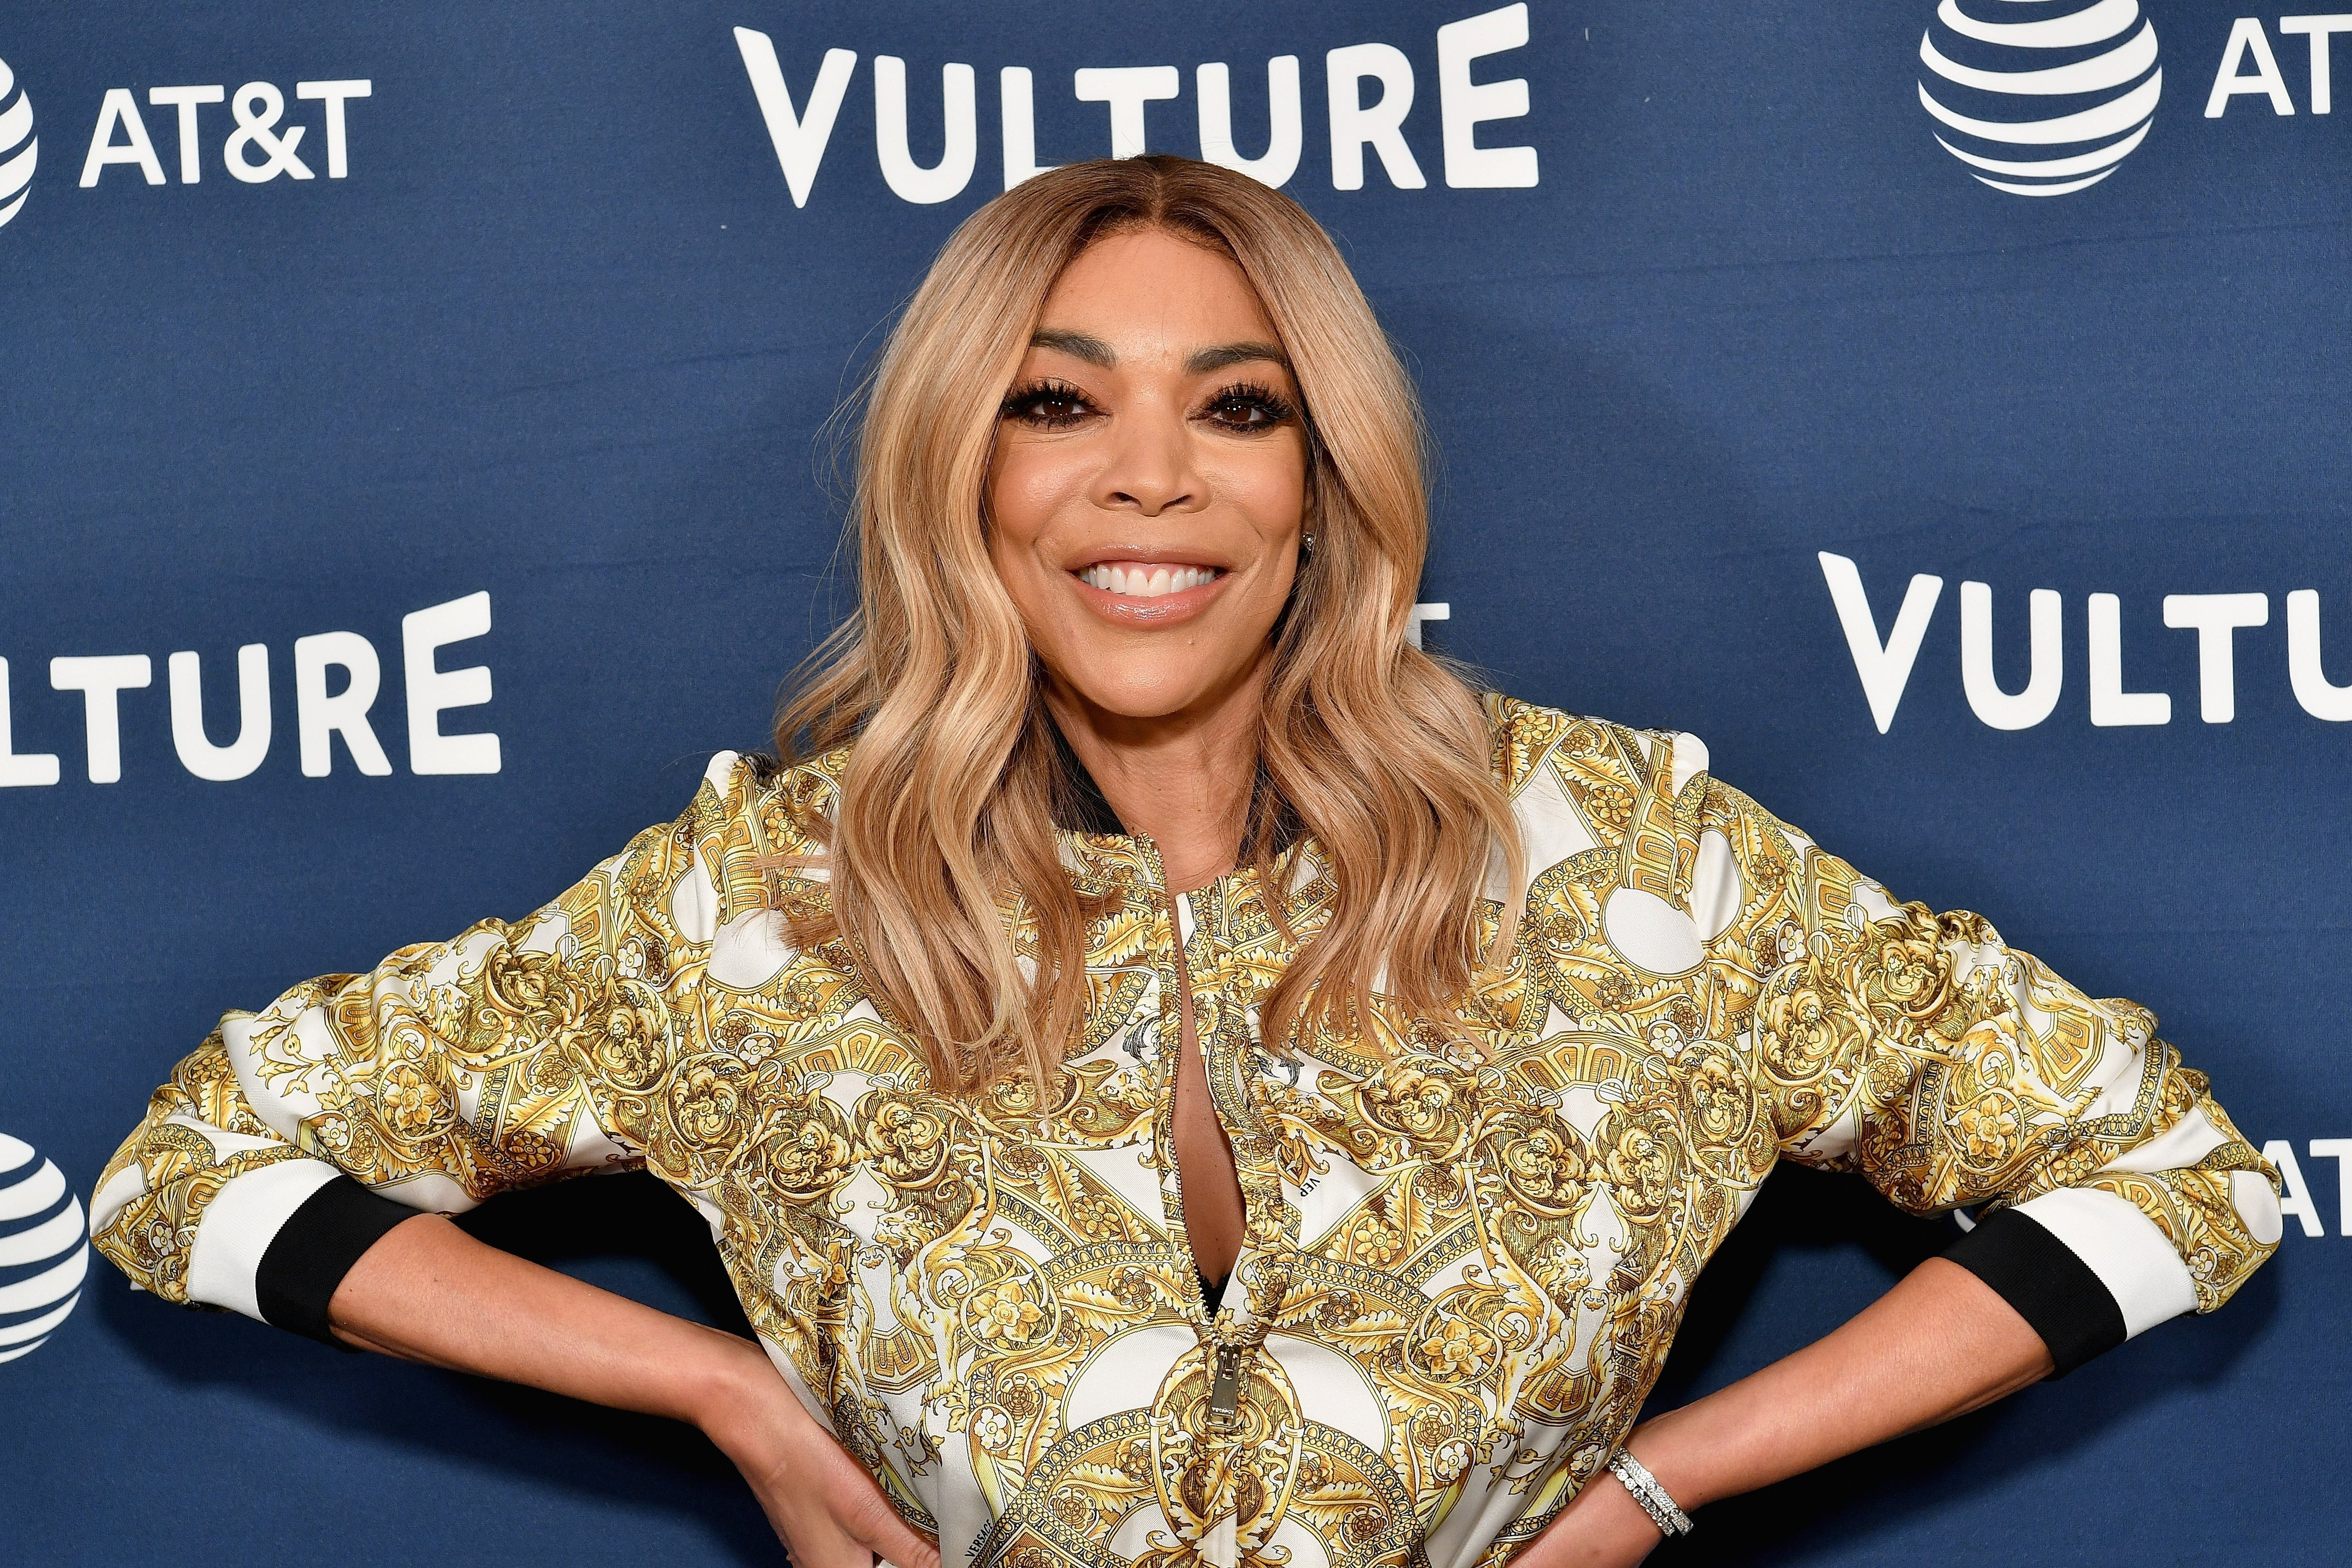 Wendy Williams attends the Vulture Festival Presented By AT&T. | Photo: GettyImages